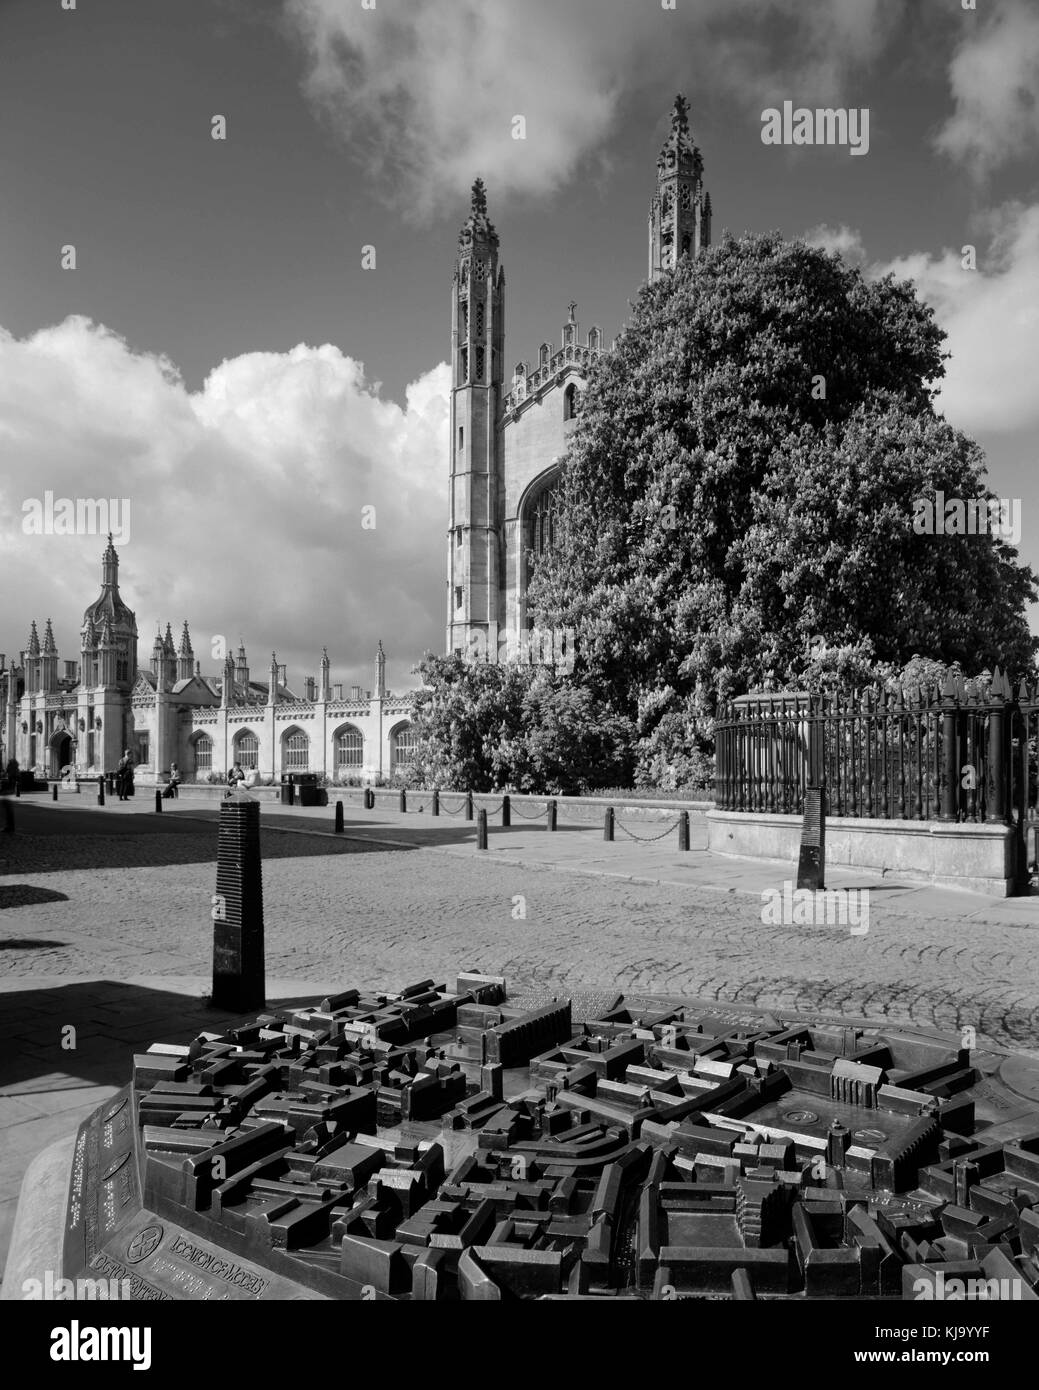 Cambridge City Centre model on King's Parade opposite King's College Chapel - Stock Image